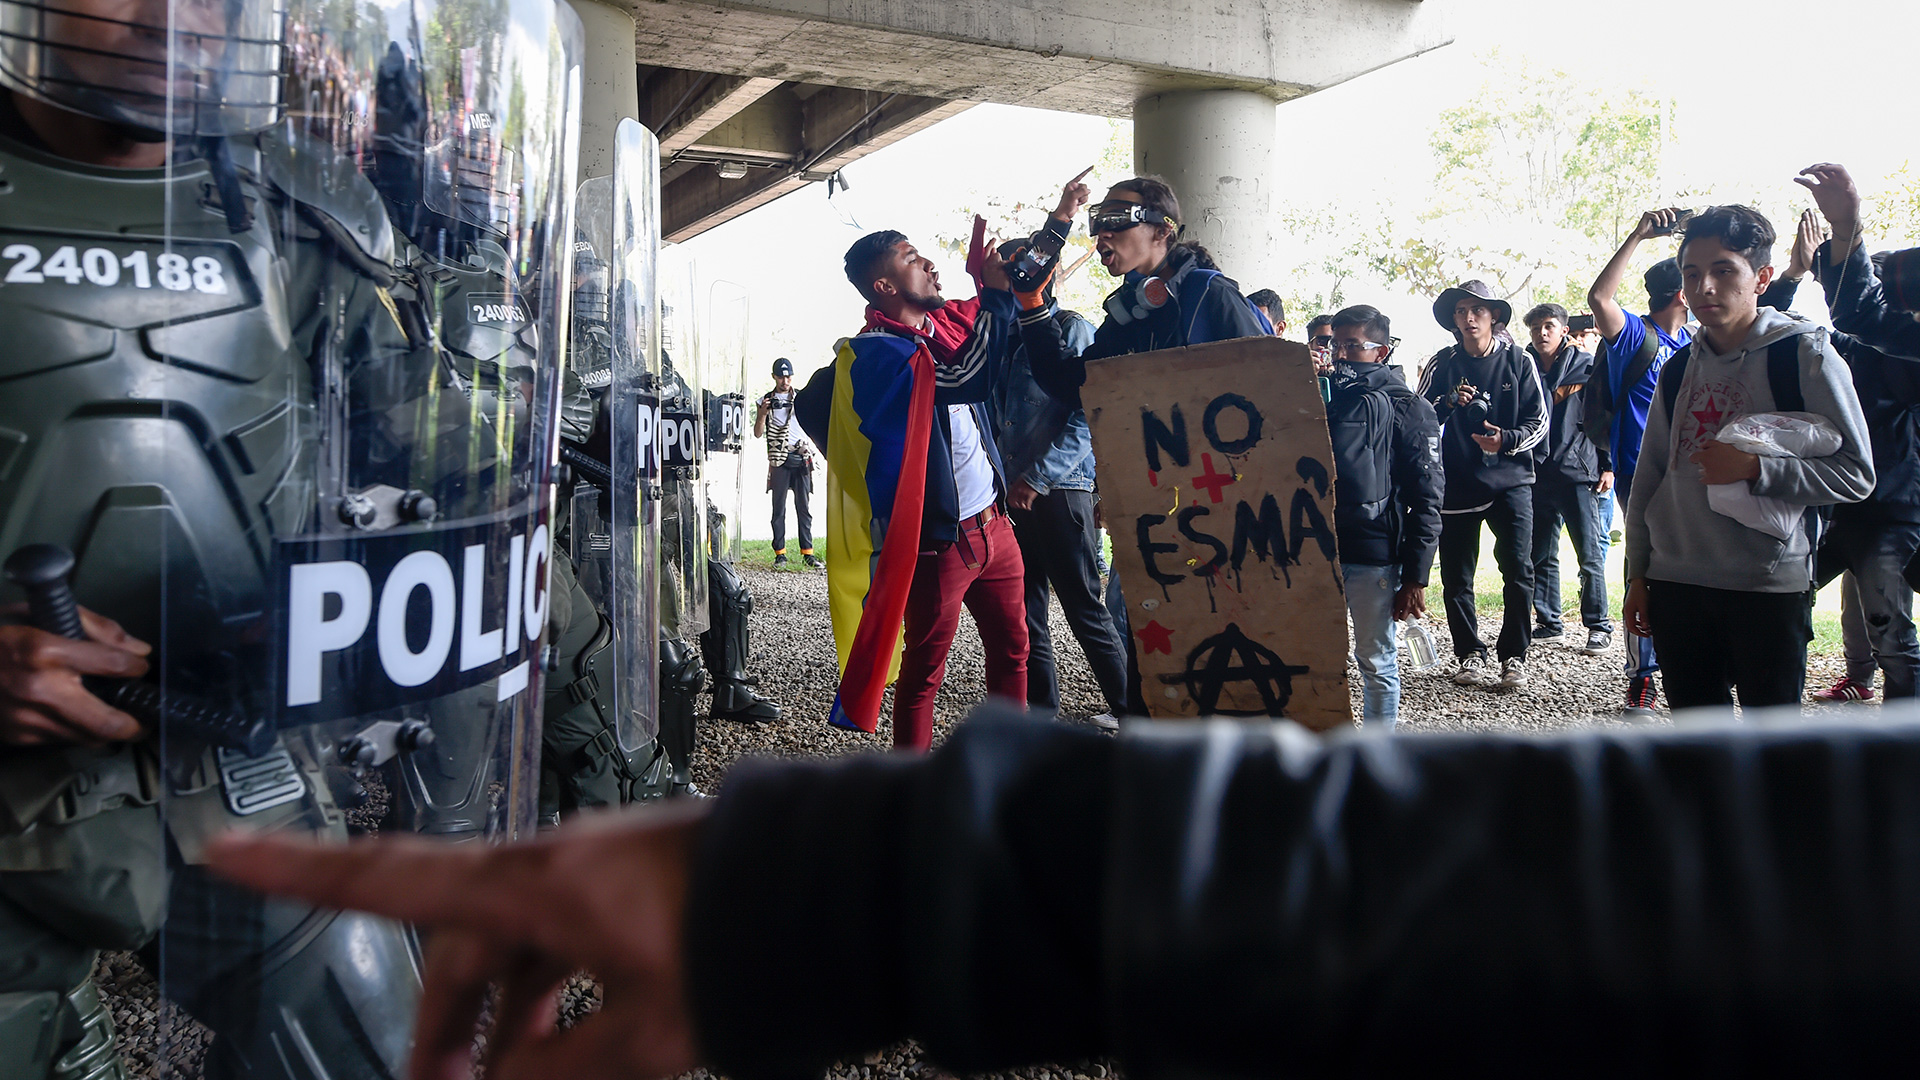 EDITORS NOTE: Graphic content / Demonstrators confront riot police in Bogota, on November 21, 2019, during a nationwide strike called by students, unions and indigenous groups to protest against the government of Colombia's President Ivan Duque. (Photo by JUAN BARRETO / AFP)